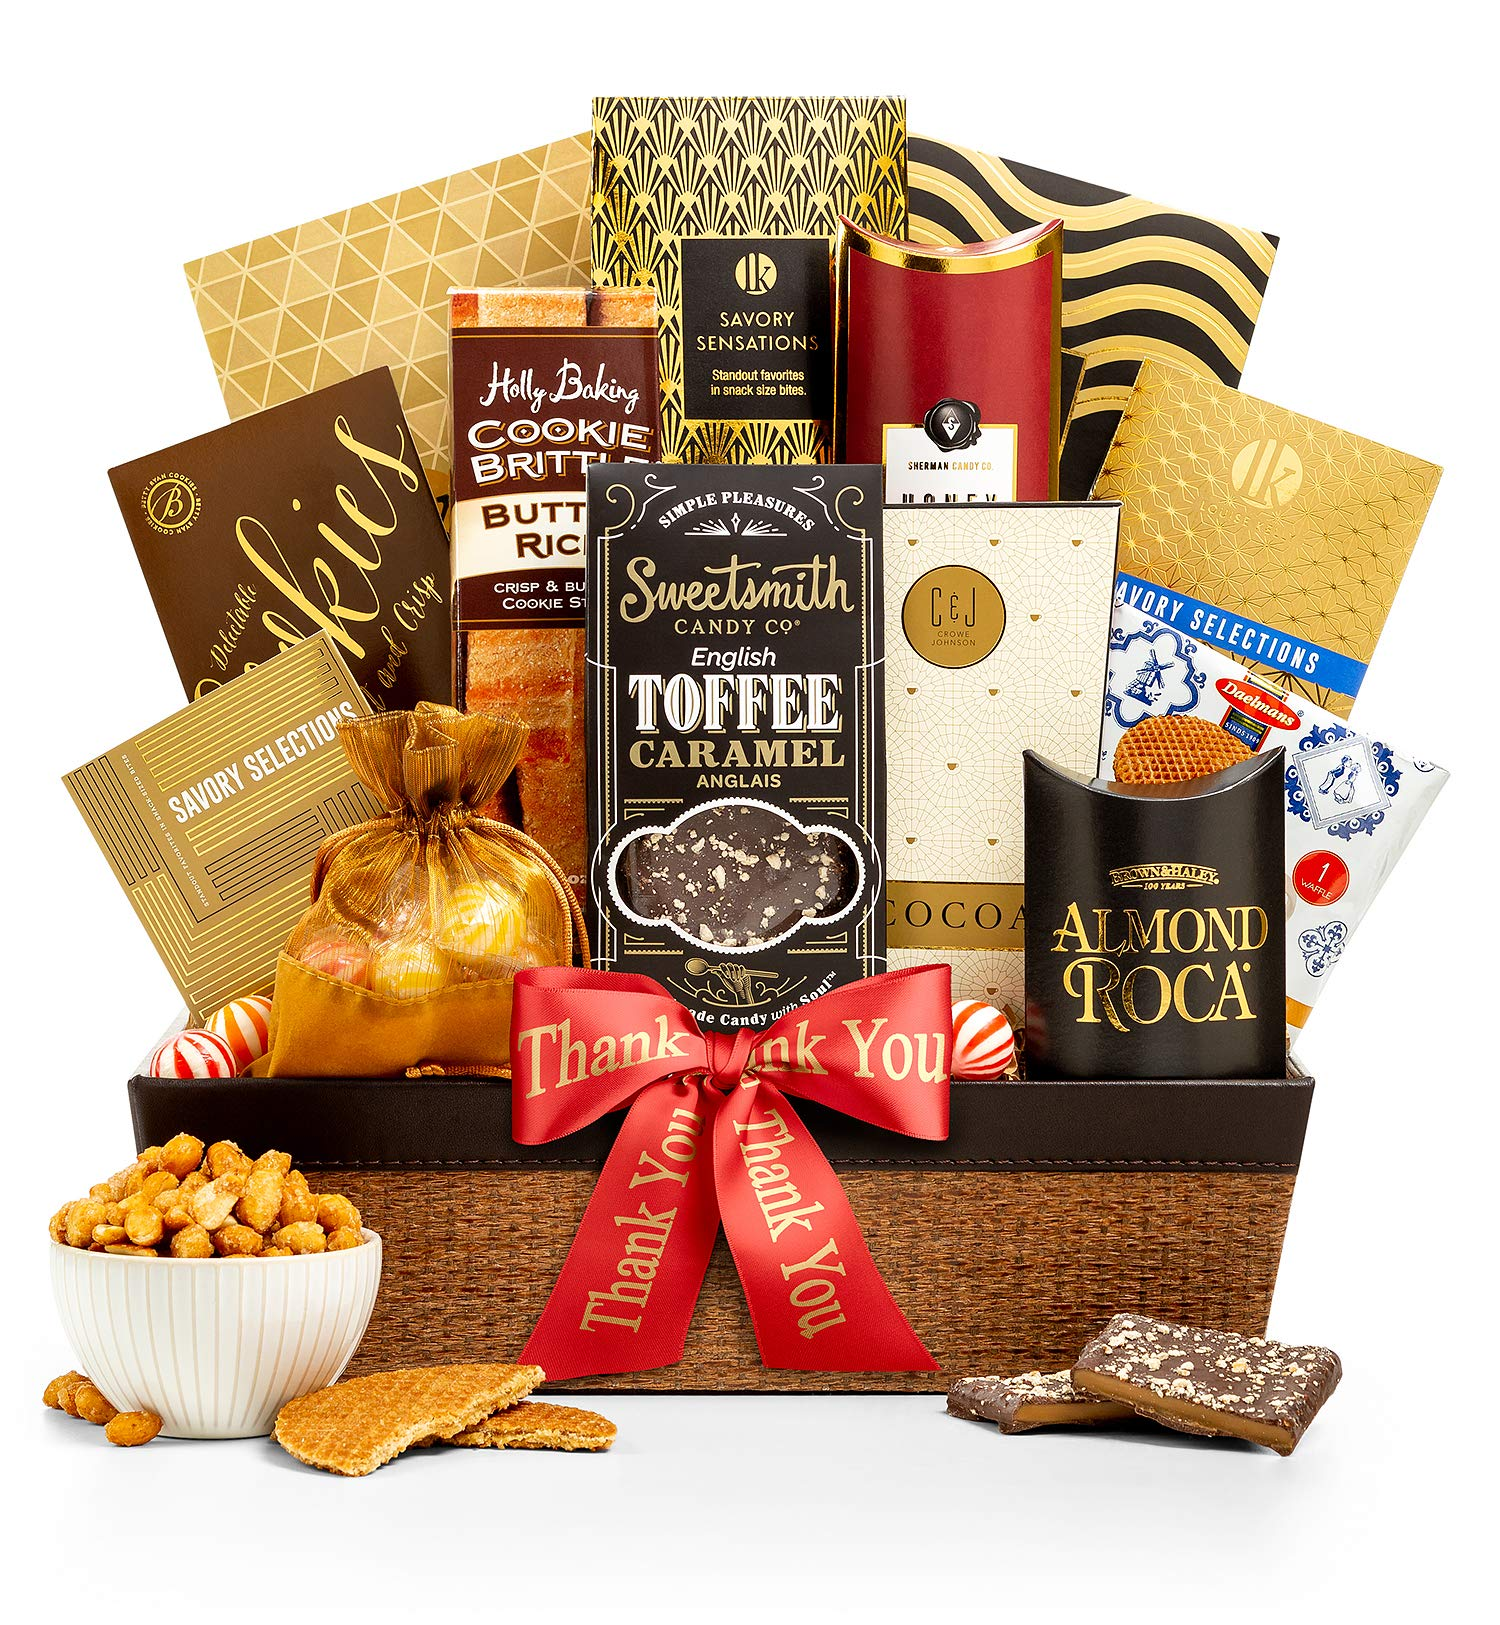 CDM product GiftTree Encore Gourmet Thank You Gift Basket | Assortments of Popcorn, Almond Roca, Honey Roasted Peanuts, Cookies & More | Perfect Way To Show Your Appreciation big image